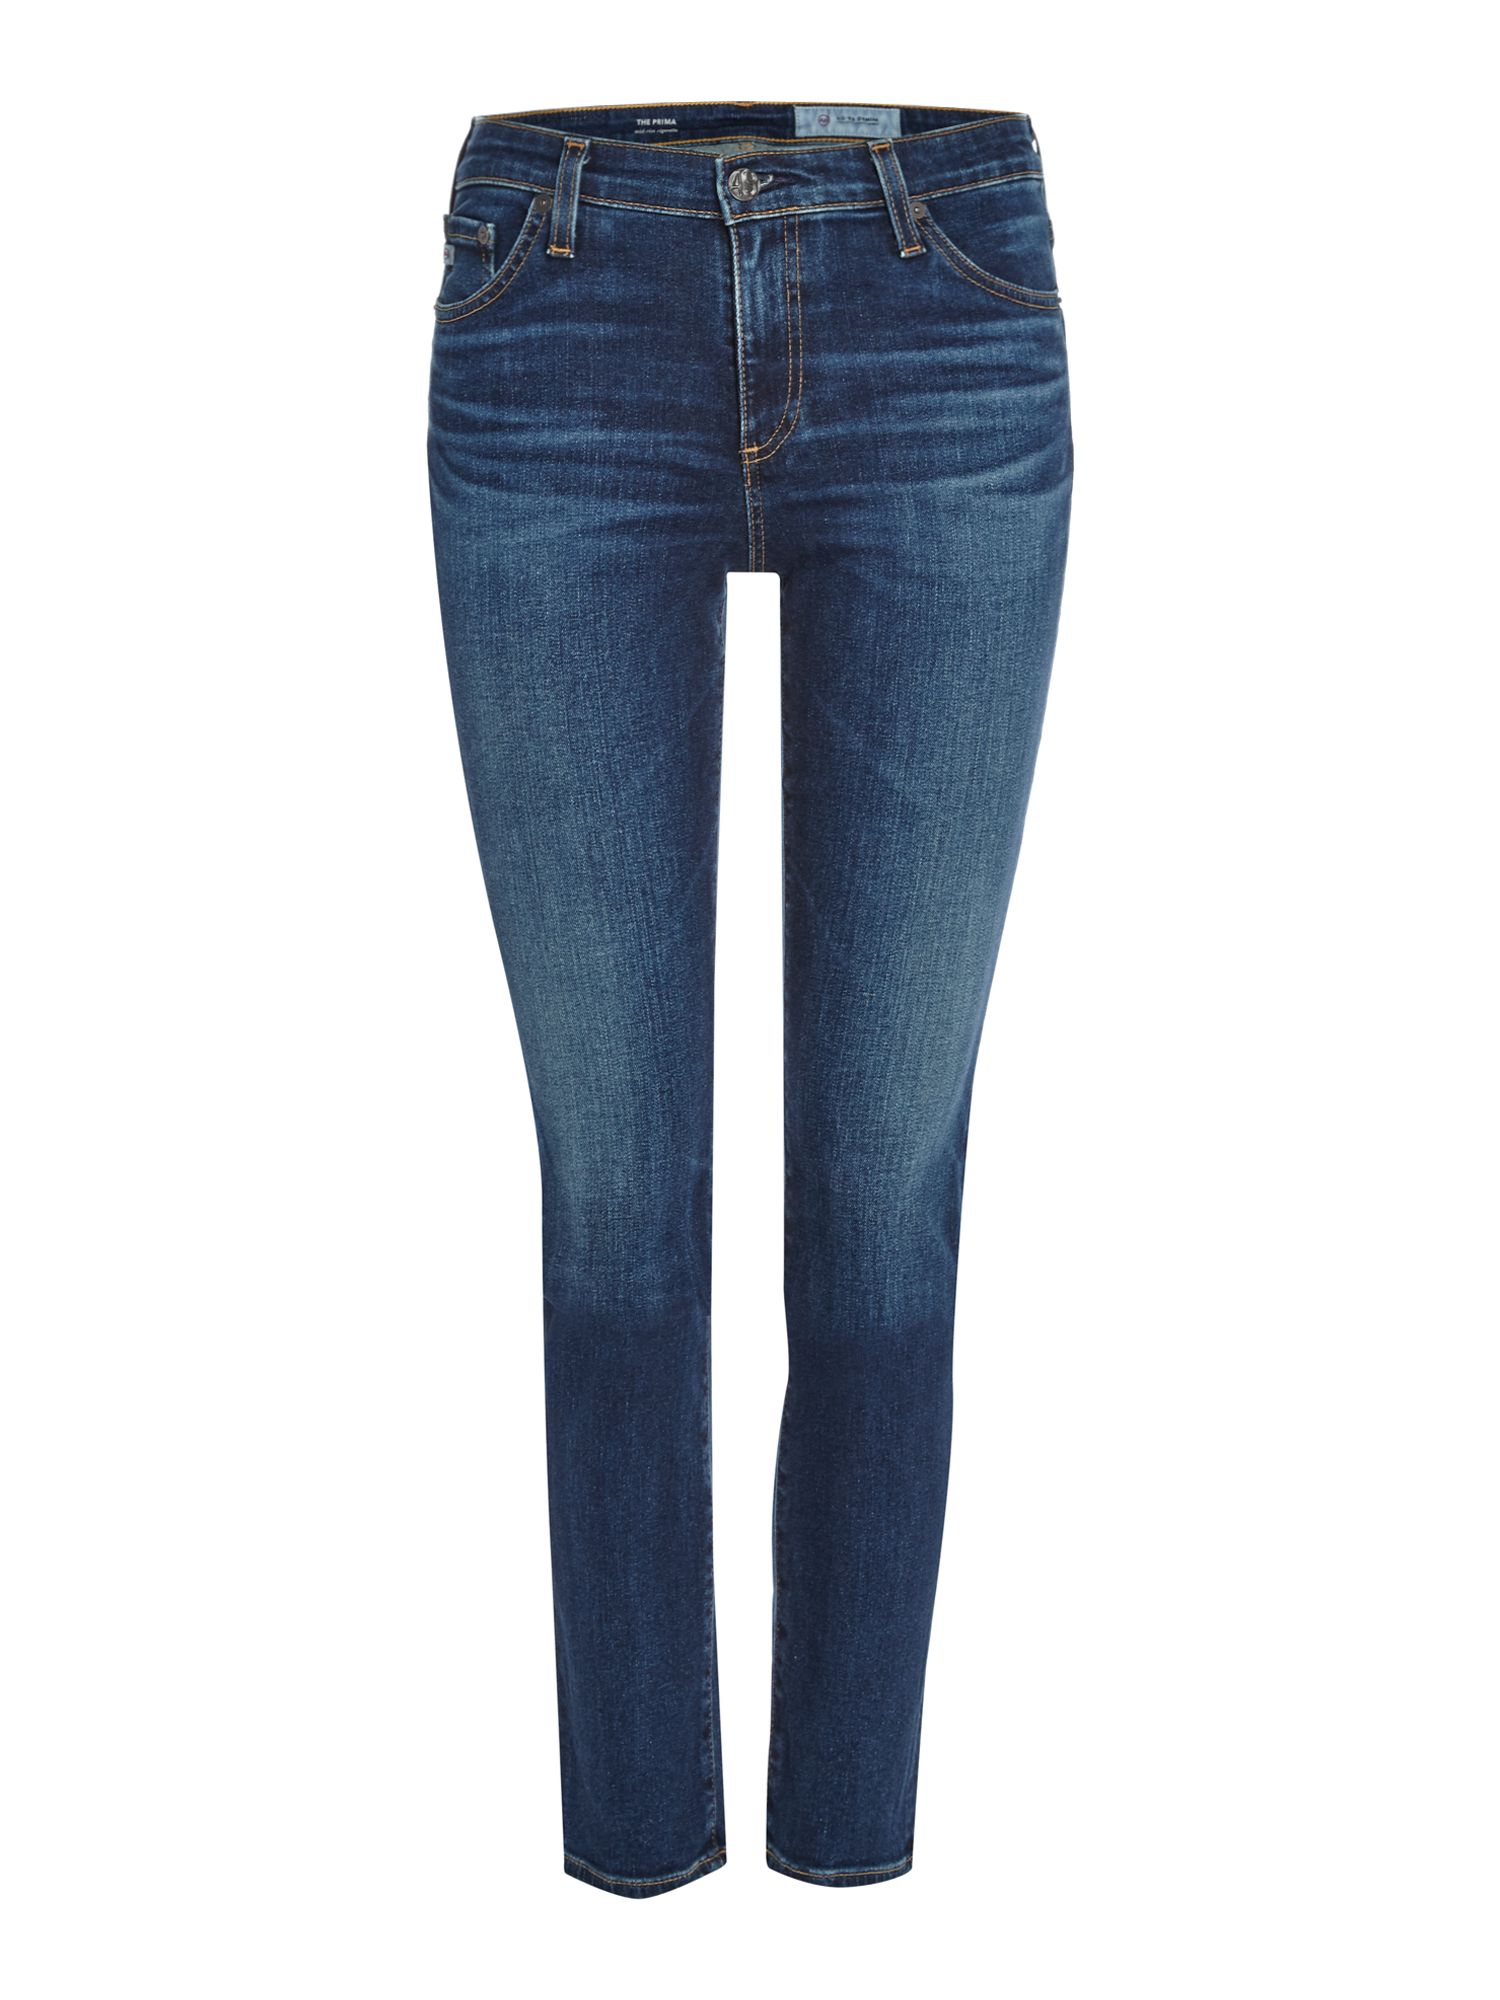 Mid Rise Skinny Prima In 4 Years Rapids, Denim Light Wash